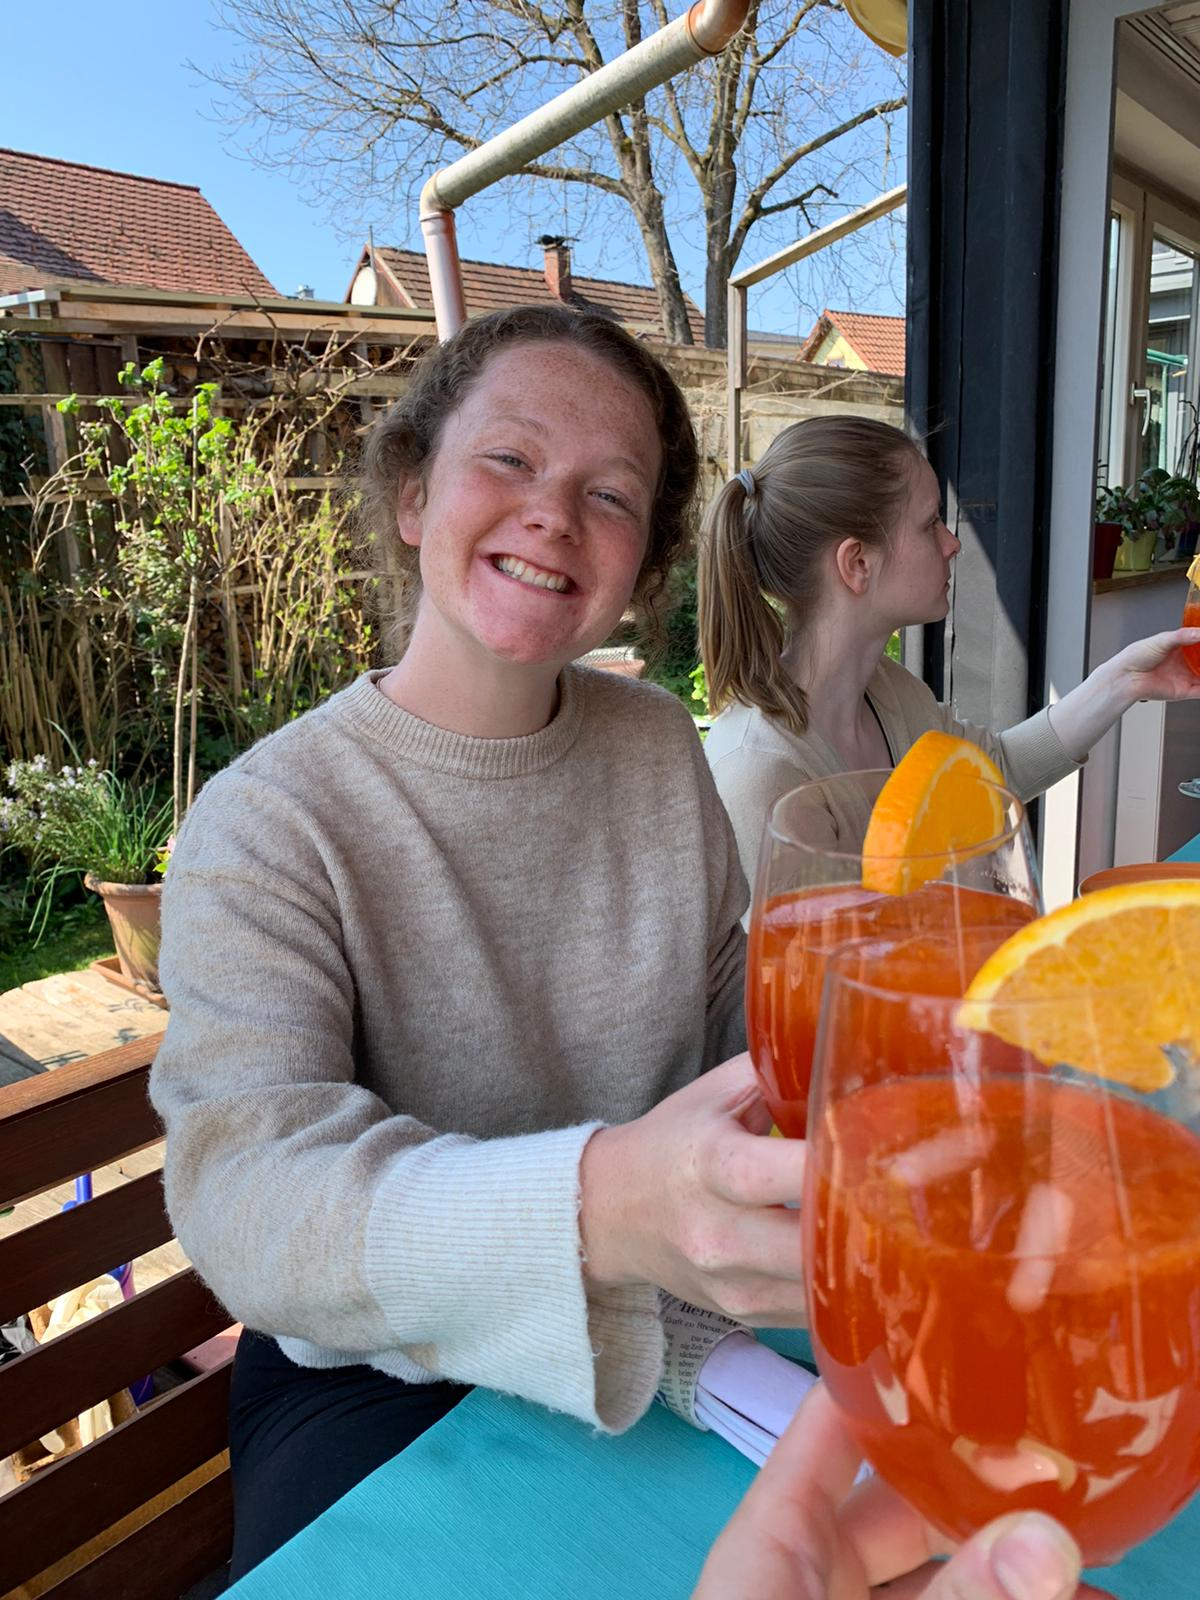 Ceiledh holding a glass of Aperolspritz